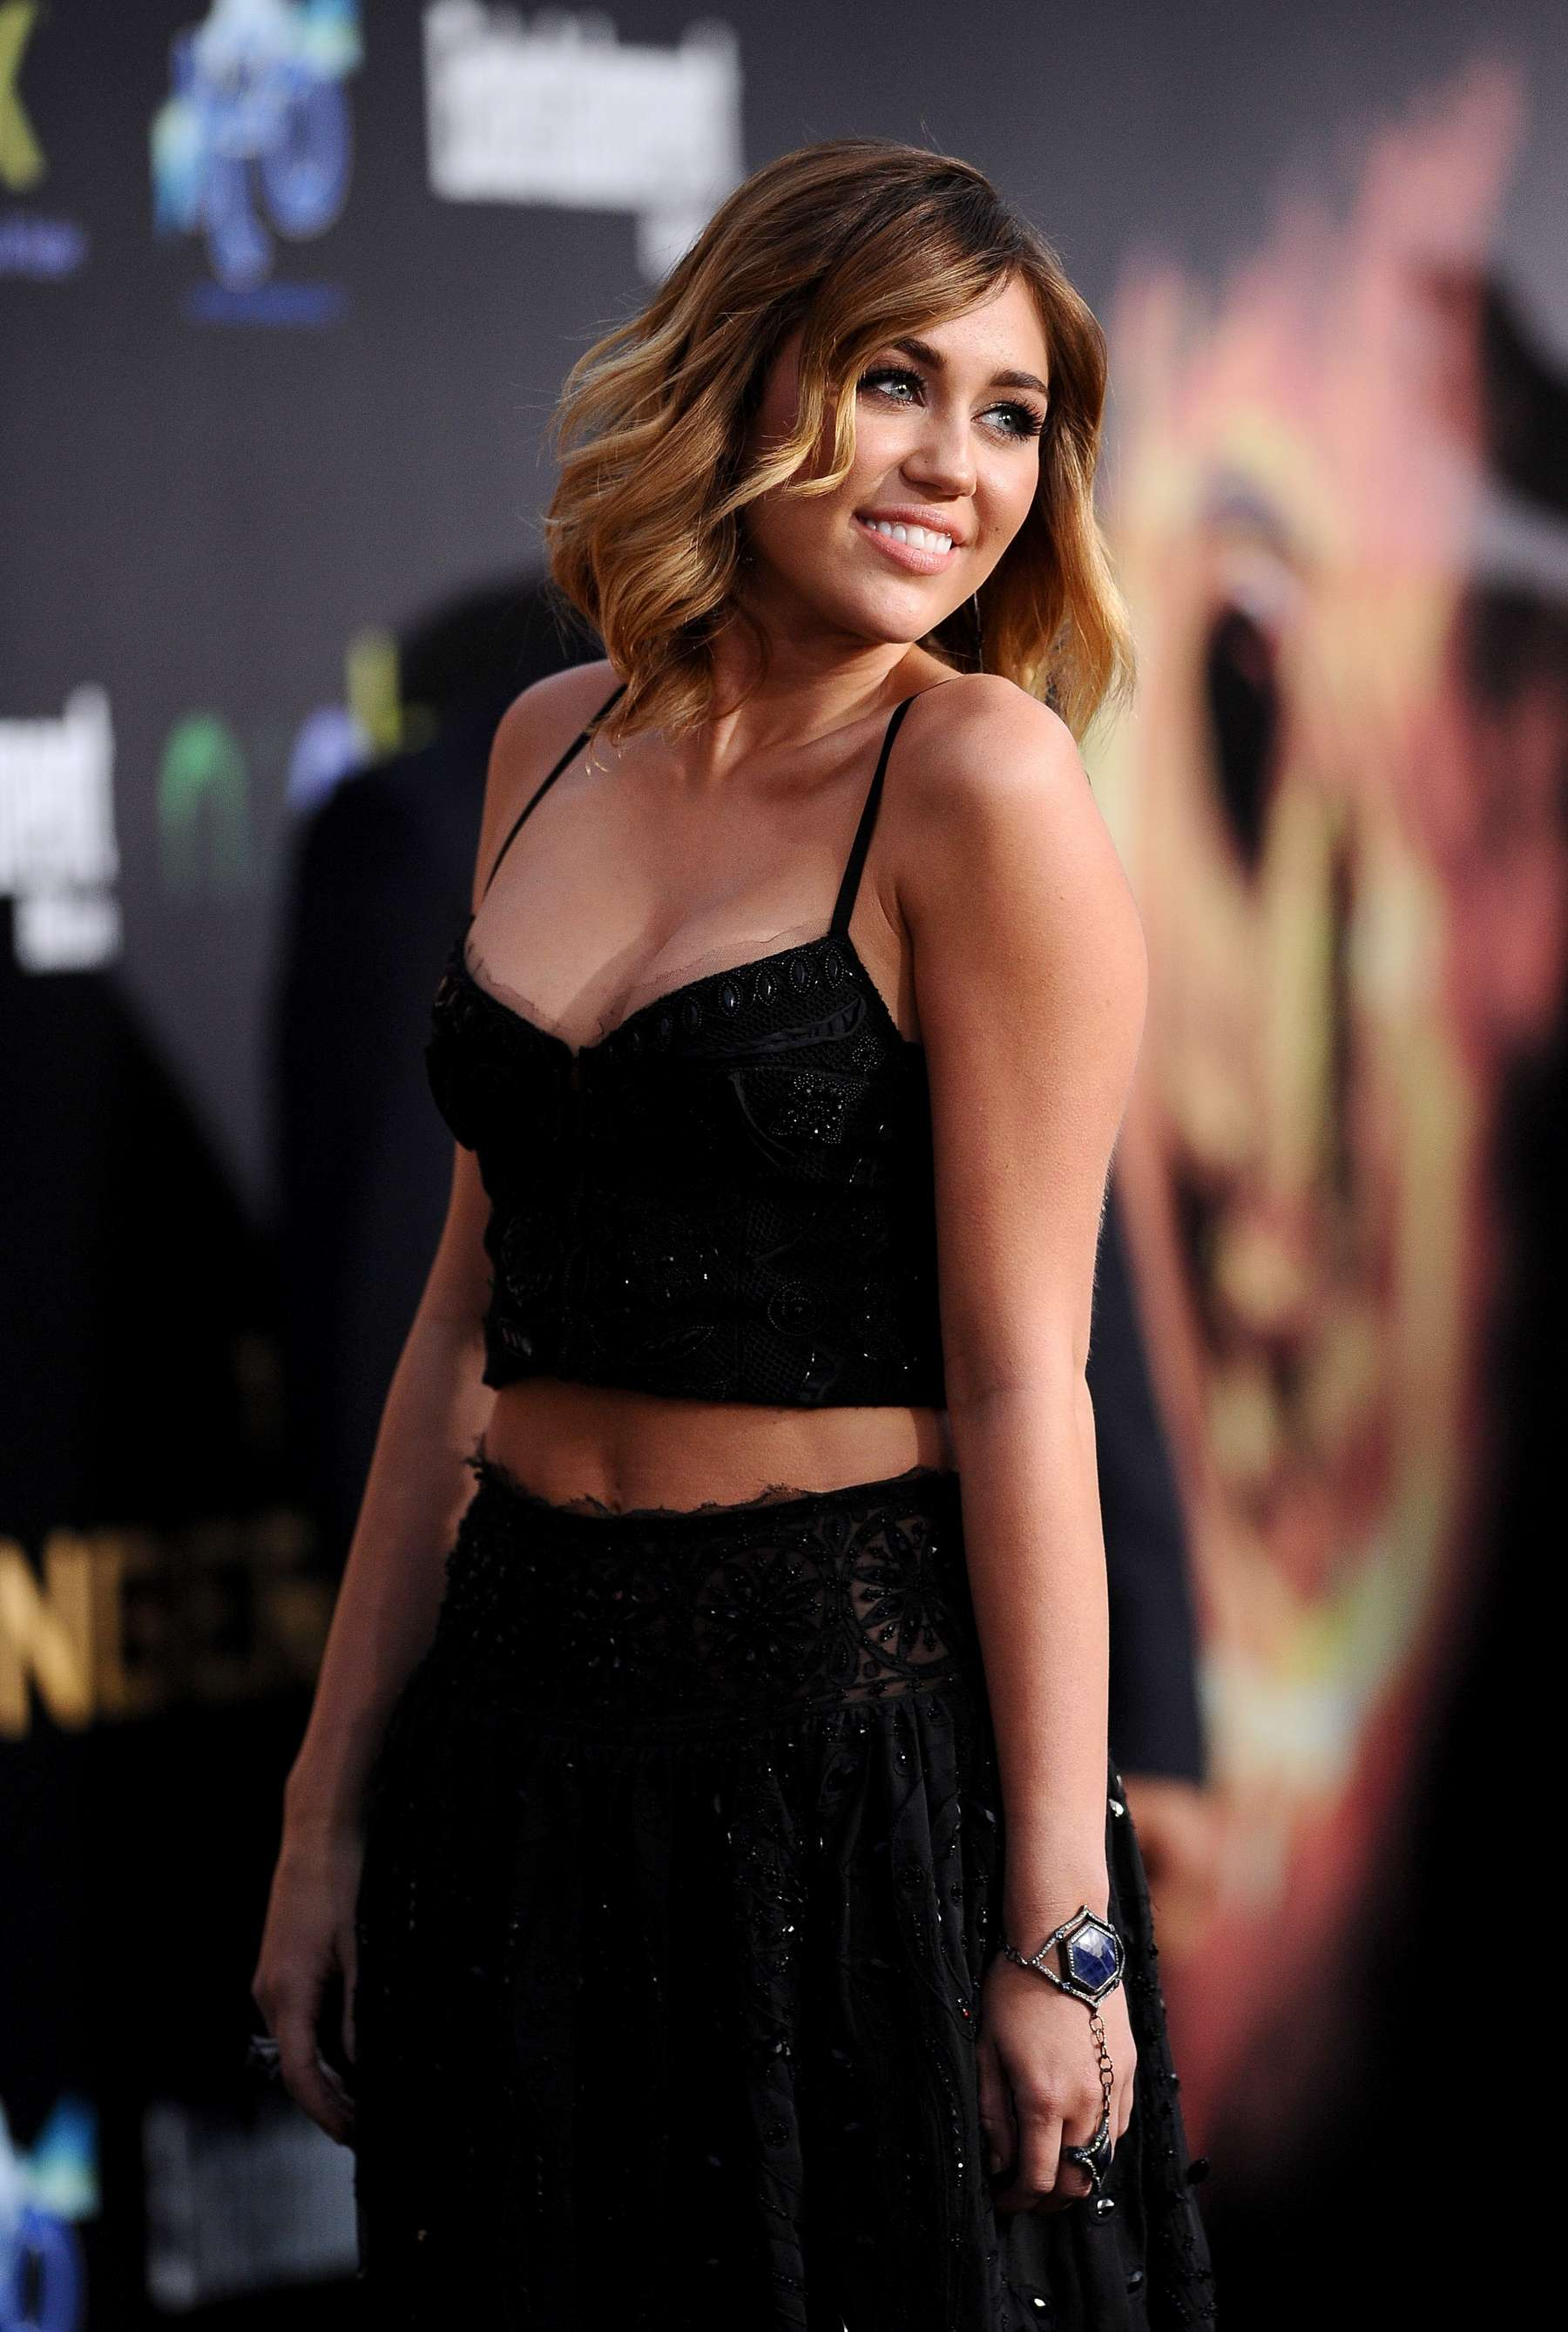 Miley Cyrus 2012 : Miley Cyrus shows big cleavage at The Hunger Games-20